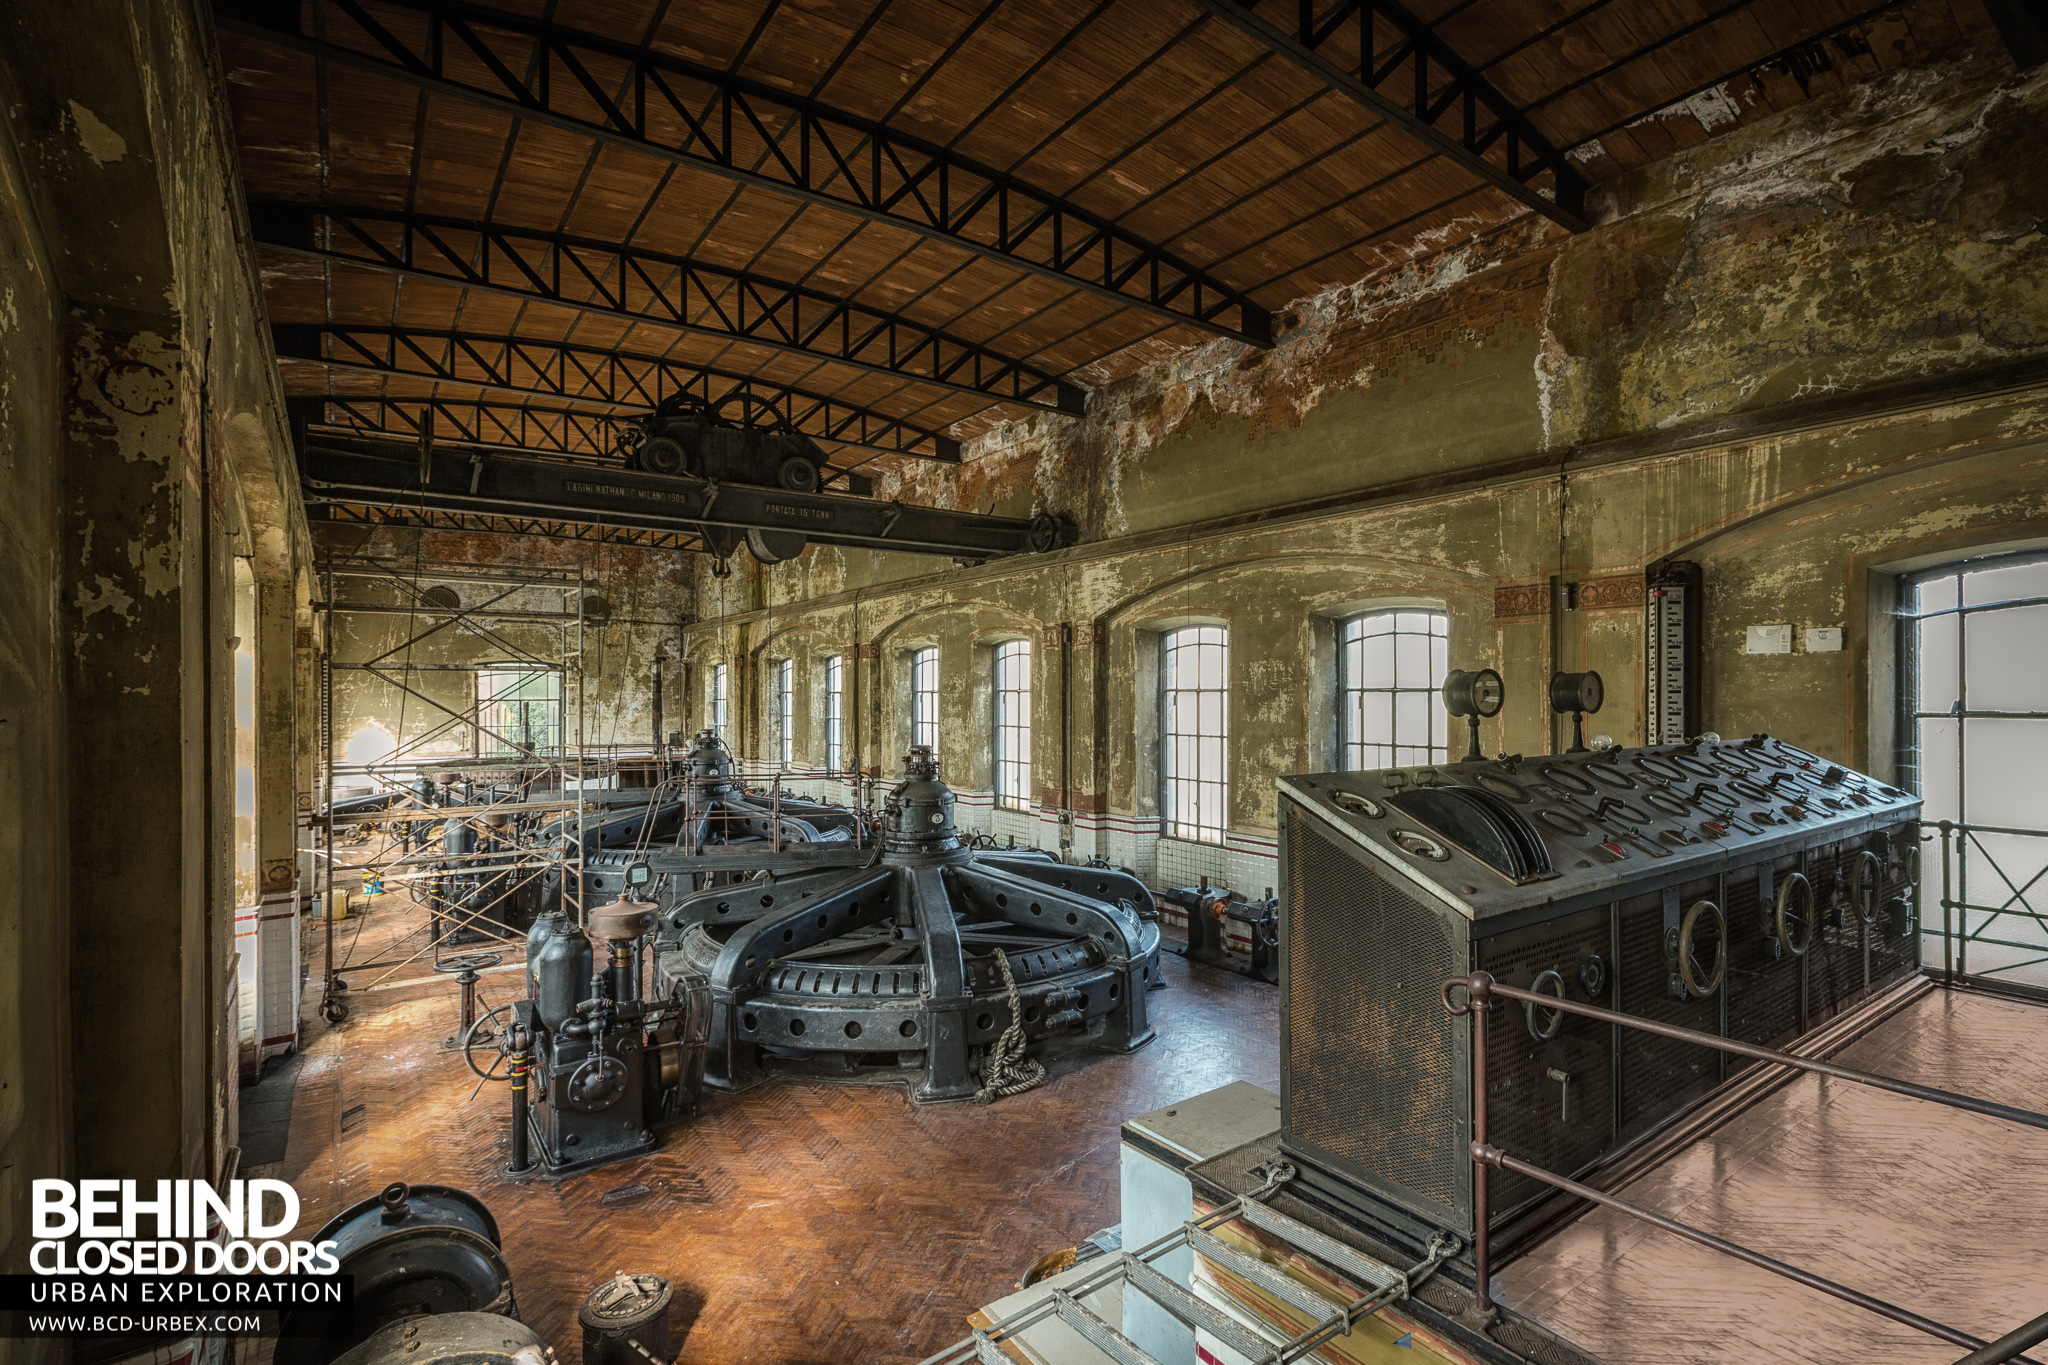 The Black Turbines of Italy An abandoned hydroelectric power